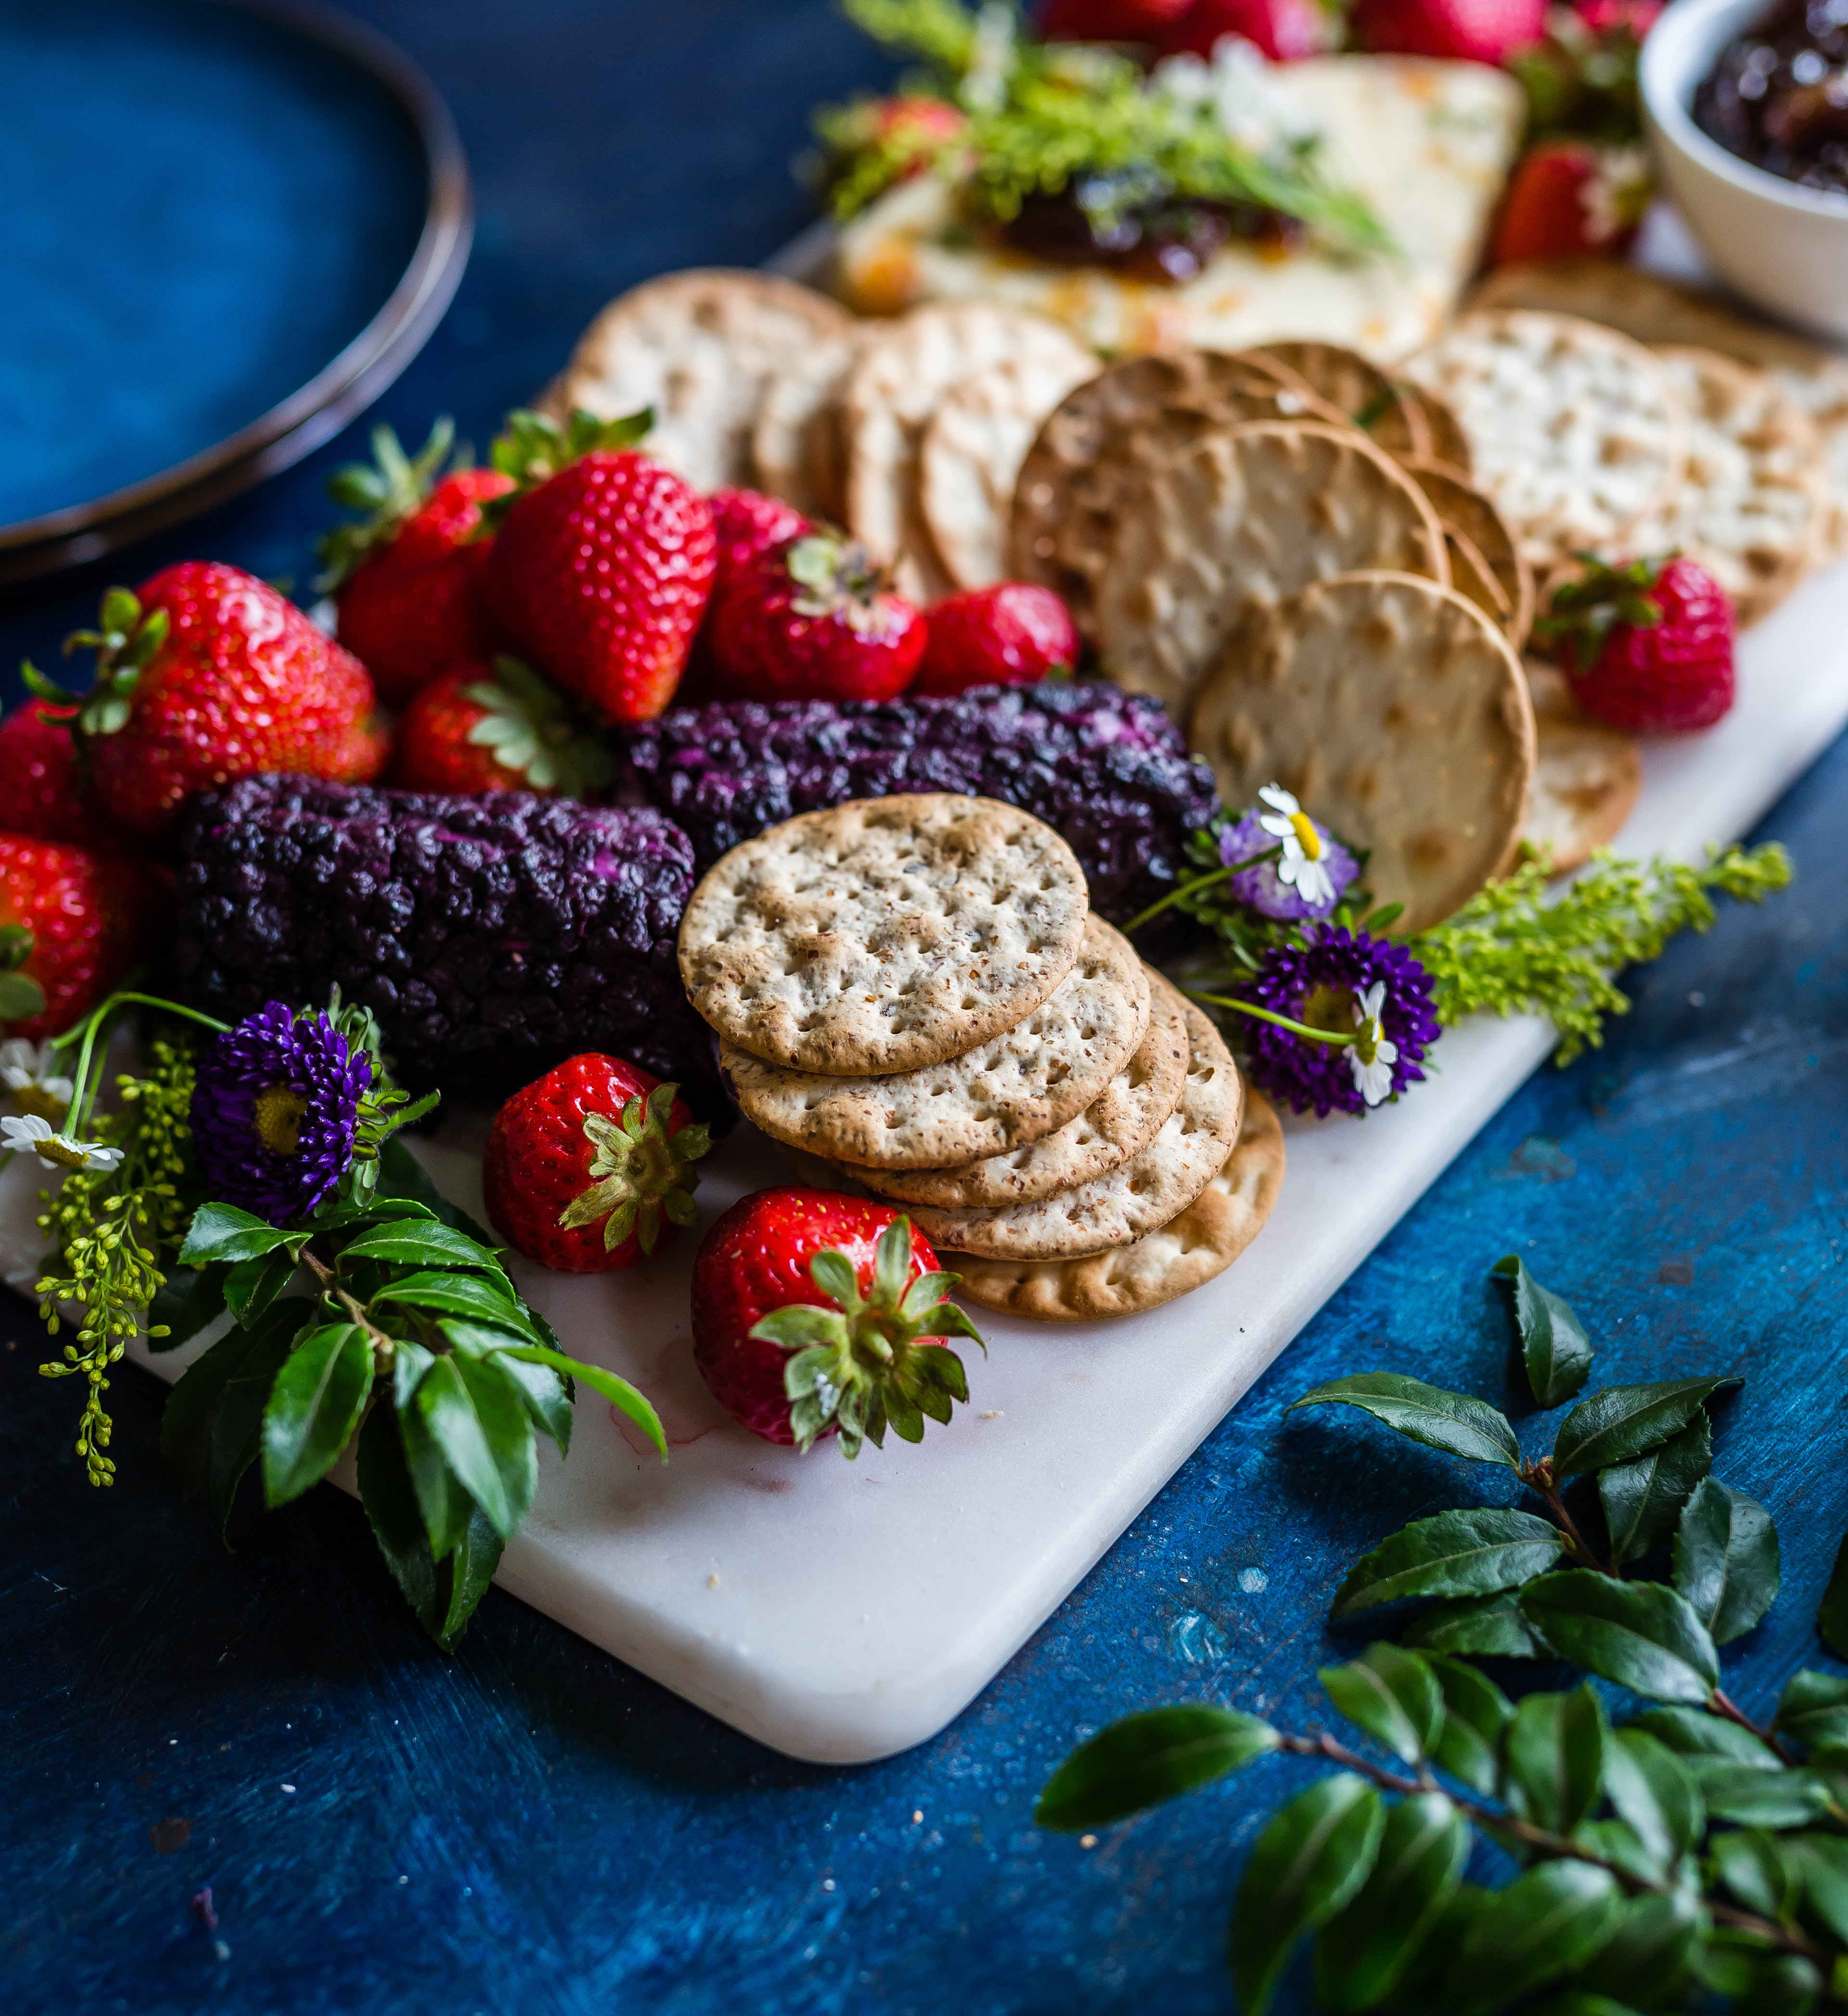 Cheeseboard with fruit, herbs, and crackers